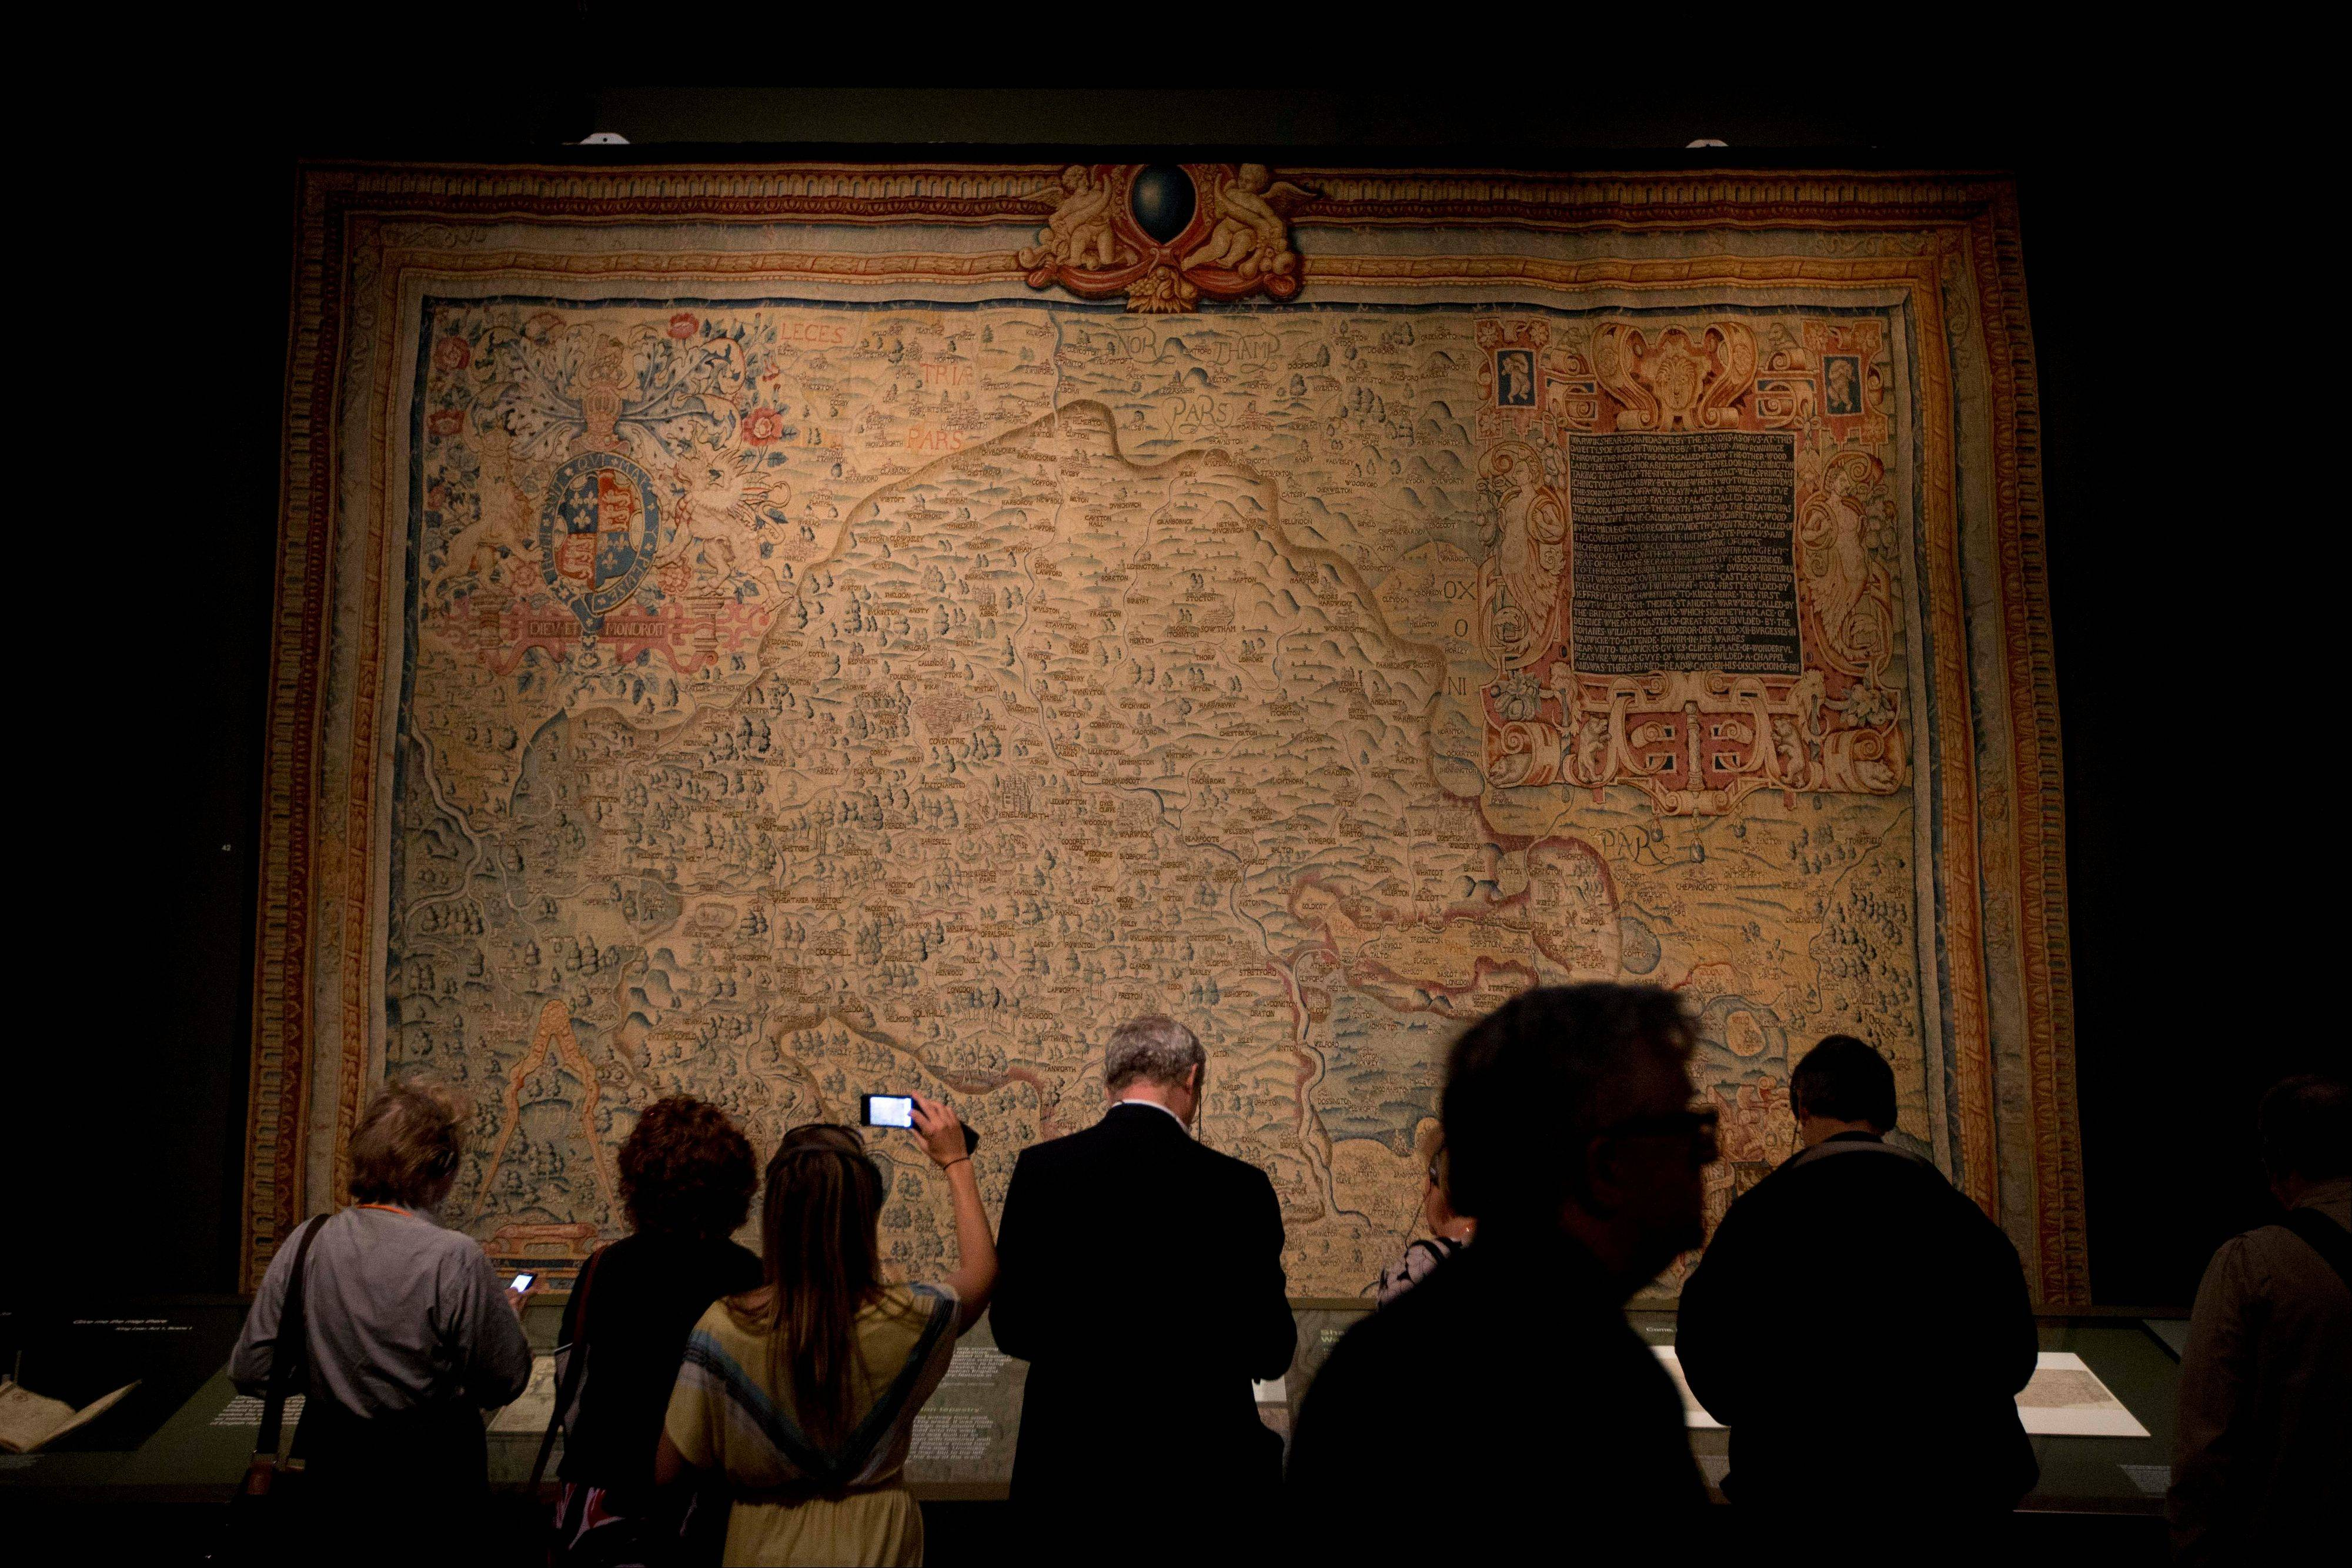 "People stand in front of a tapestry map of the county of Warwickshire, where Shakespeare was brought up, dated about 1588, made for wealthy landowner Ralph Sheldon, during the press view of the ""Shakespeare: staging the world"" exhibition at the British Museum in London, Wednesday, July 18, 2012. The exhibition, which is being held as part of the London 2012 cultural Olympiad, provides a unique insight into the emerging role of London as a world city 400 years ago, seen through the innovative perspective of Shakespeare's plays. It runs from July 19 to November 25."